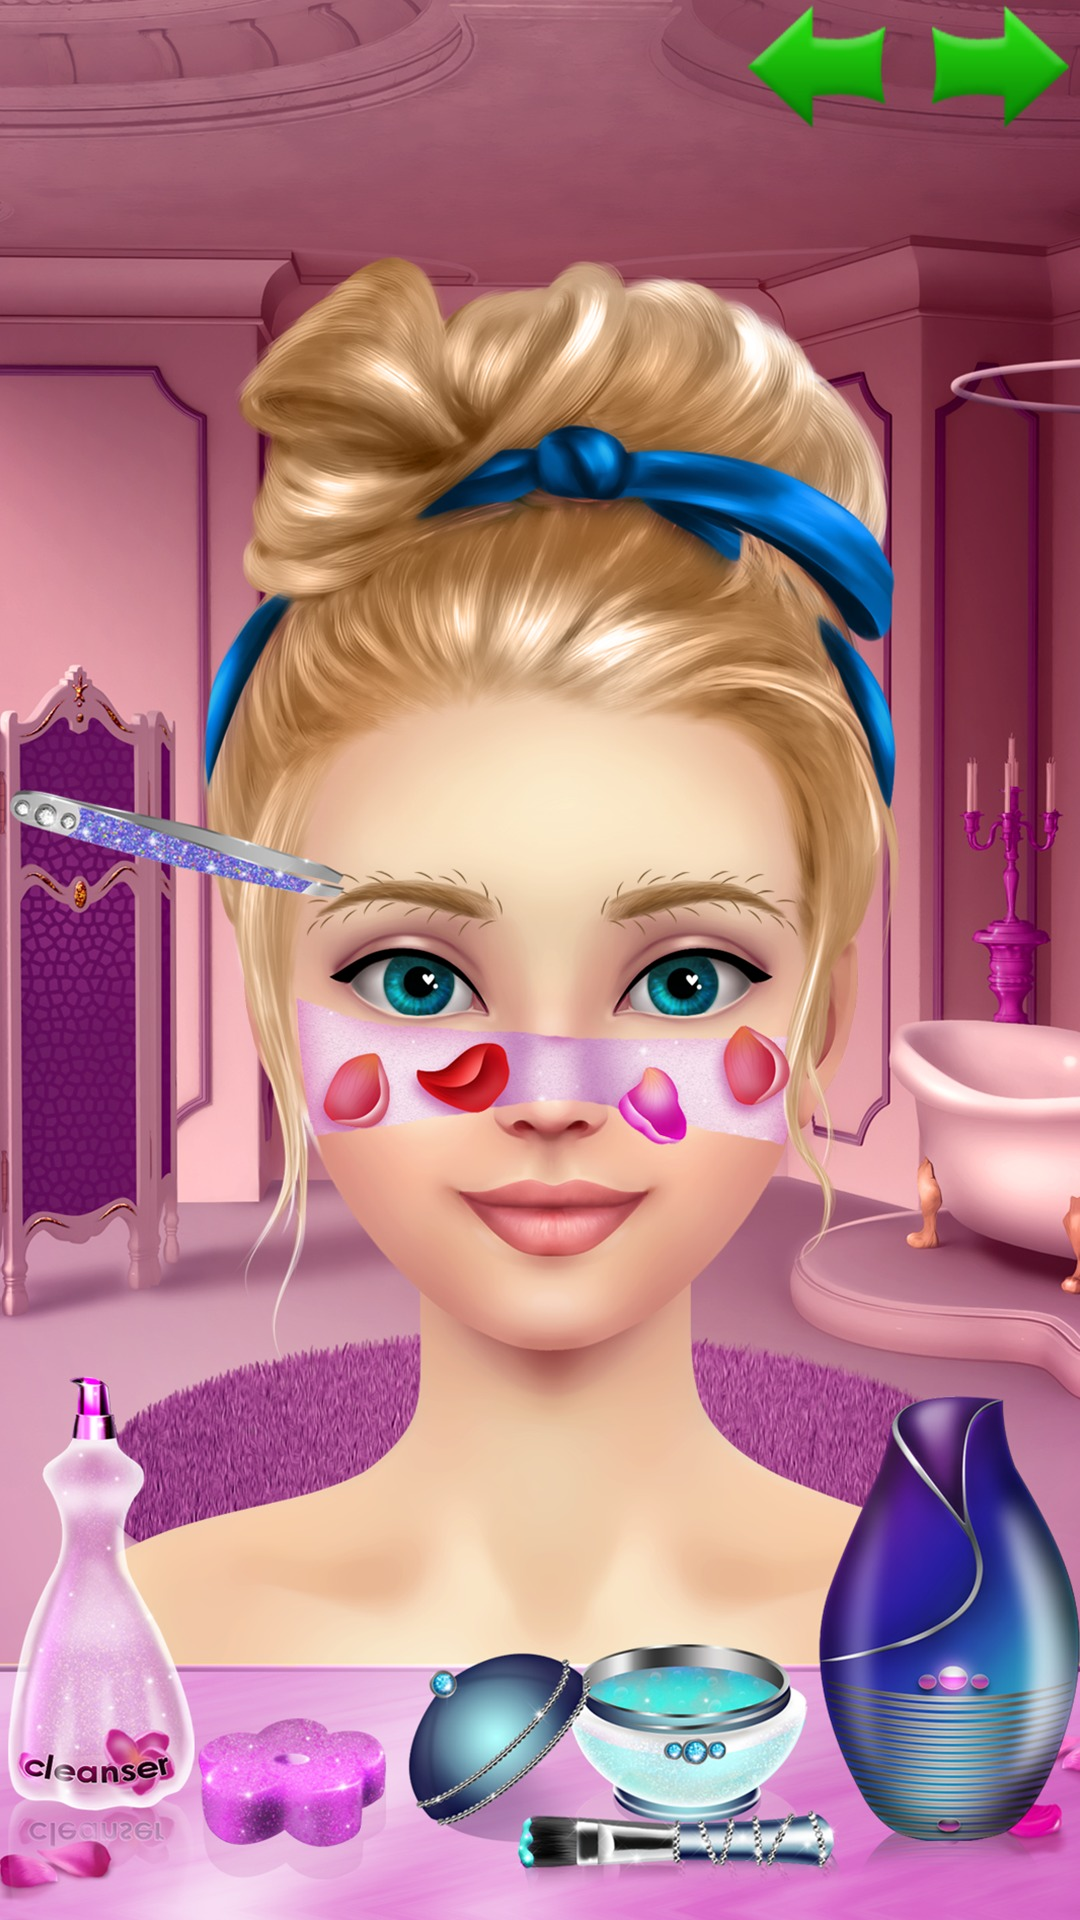 Supermodel Makeover Spa Makeup And Dress Up Game For